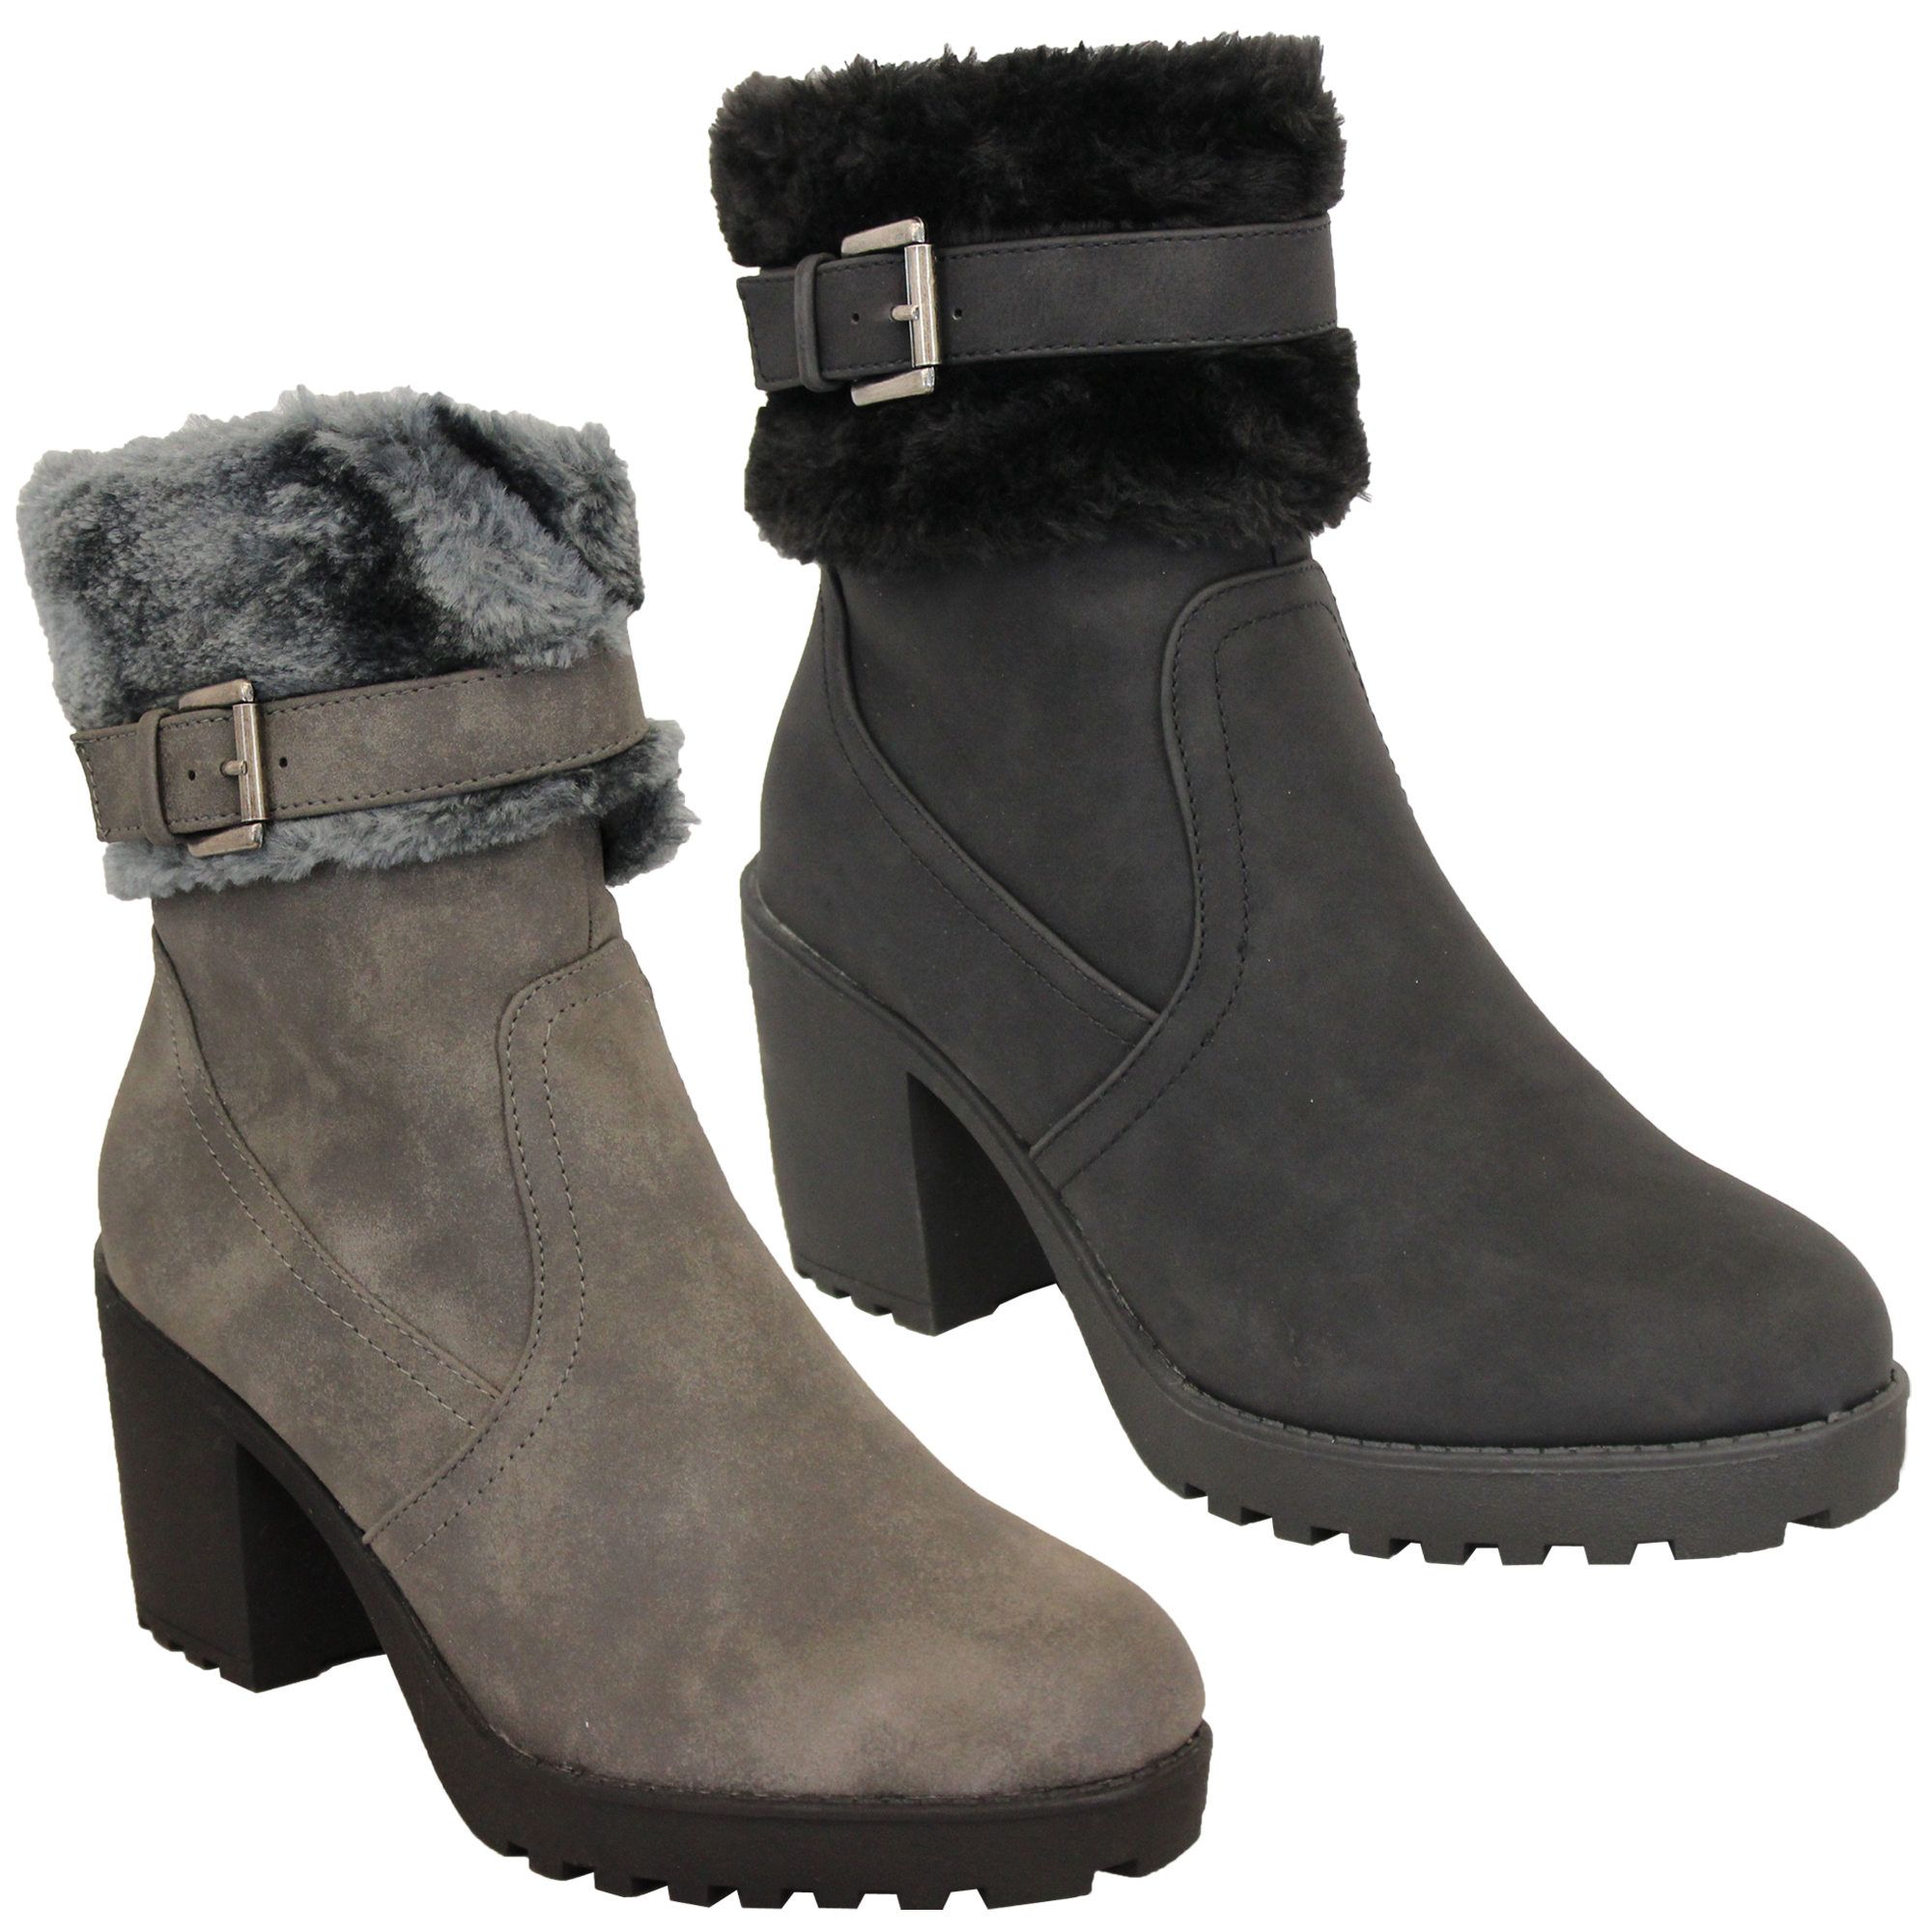 Ladies-Block-Heel-Chelsea-Ankle-Boots-Womens-Fur-Buckle-Warm-Casual-Winter-New thumbnail 4